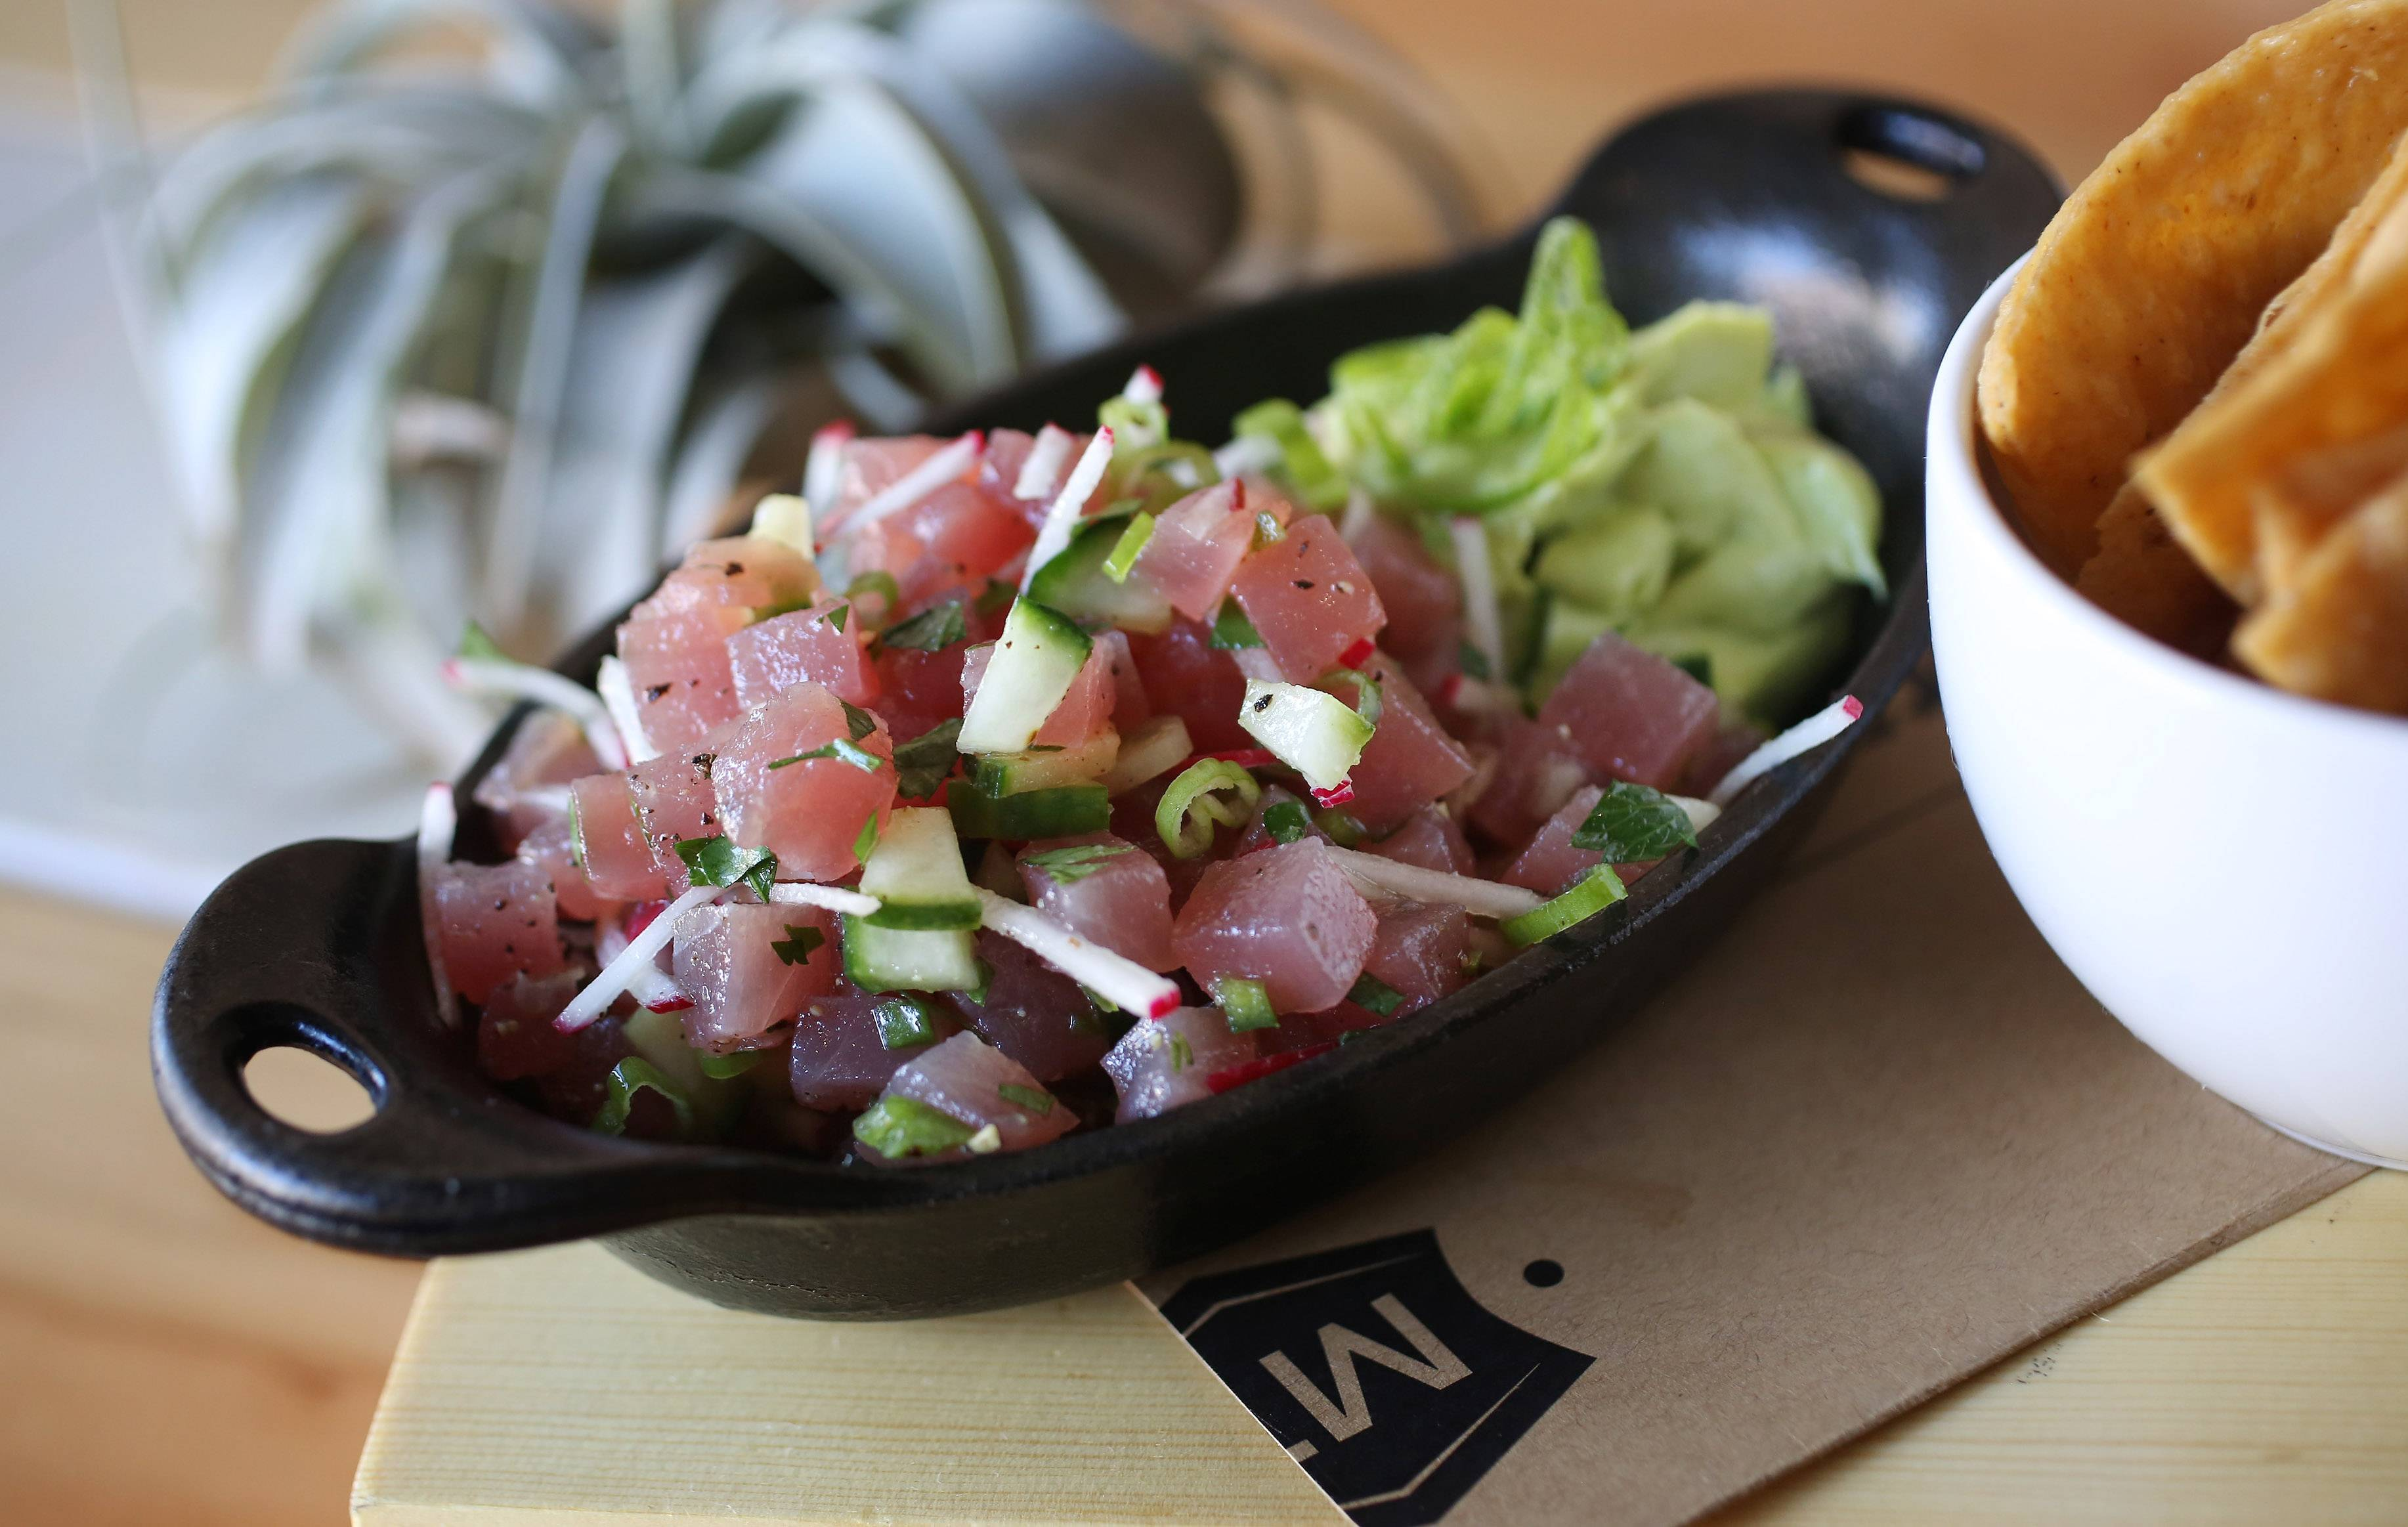 Chef Lee Kuebler serves tuna tartare with homemade tortilla chips at Milwalky Trace in Libertyville.